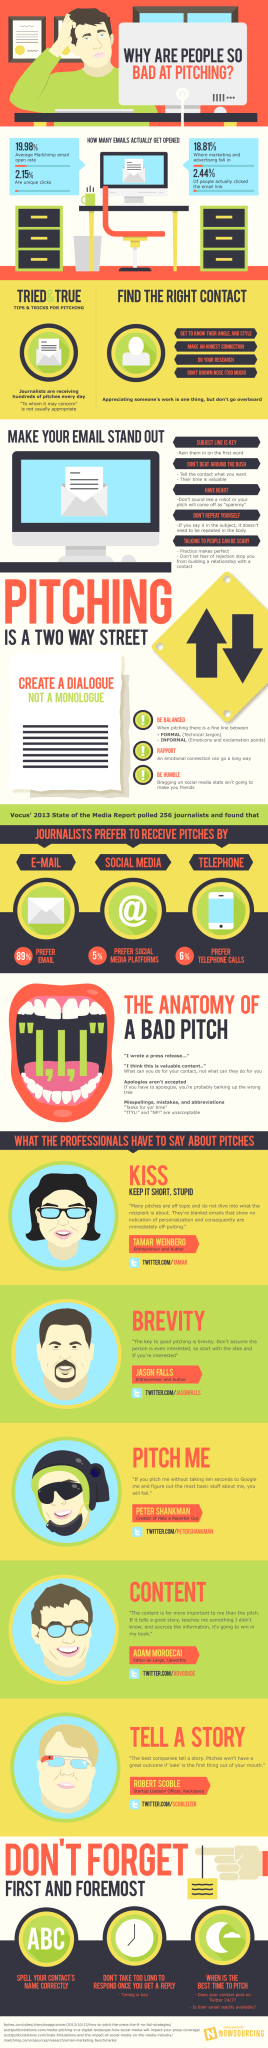 media pitching infographic